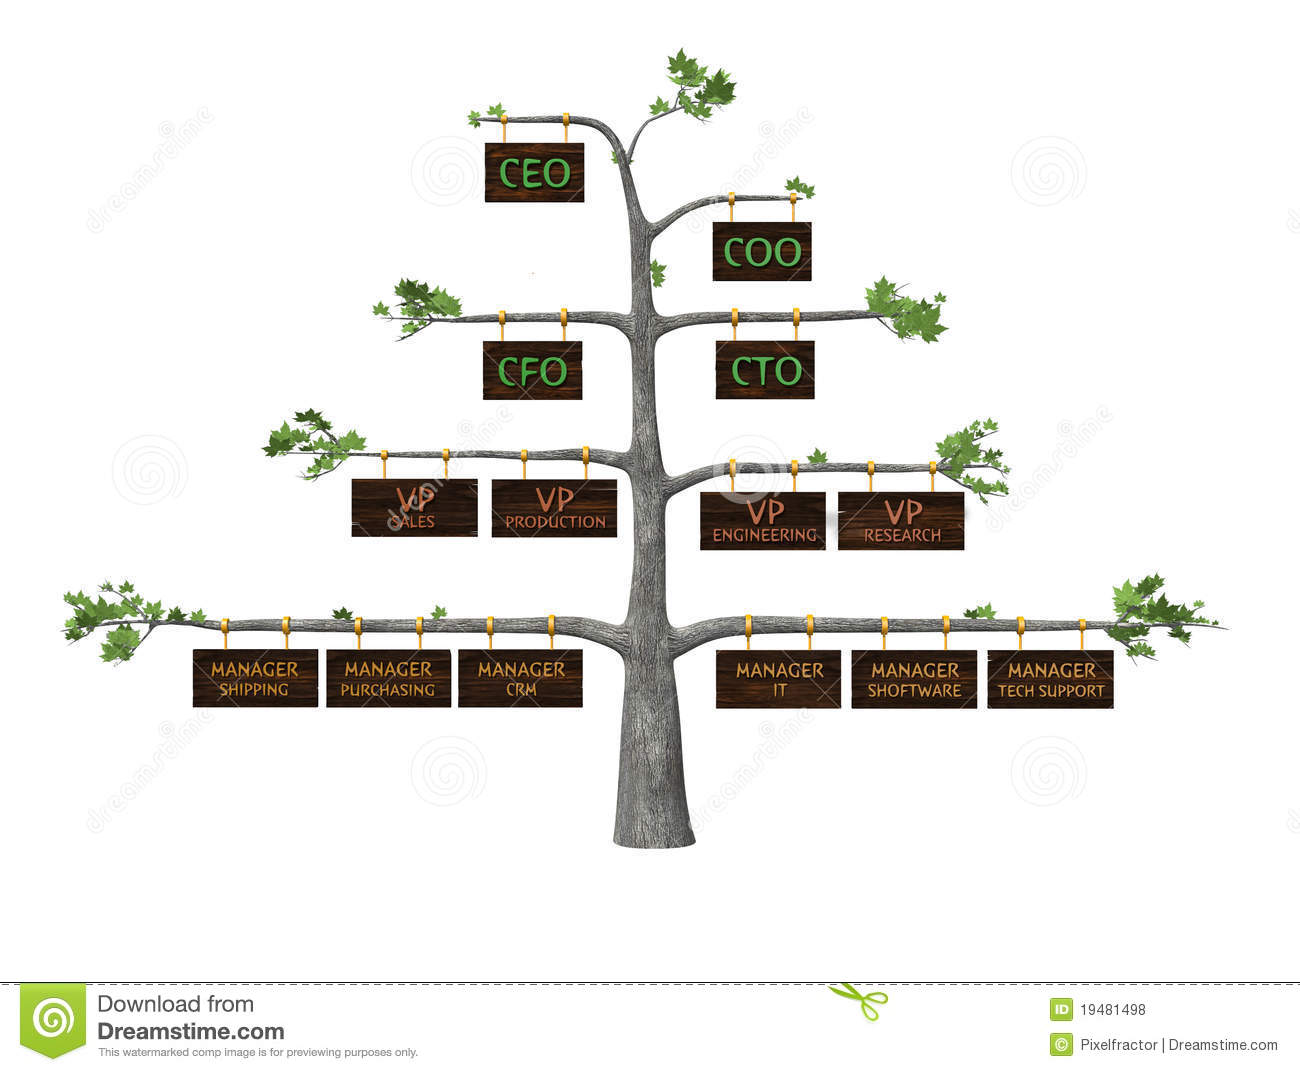 Org Chart Eco Friendly Royalty Free Stock Photos Image